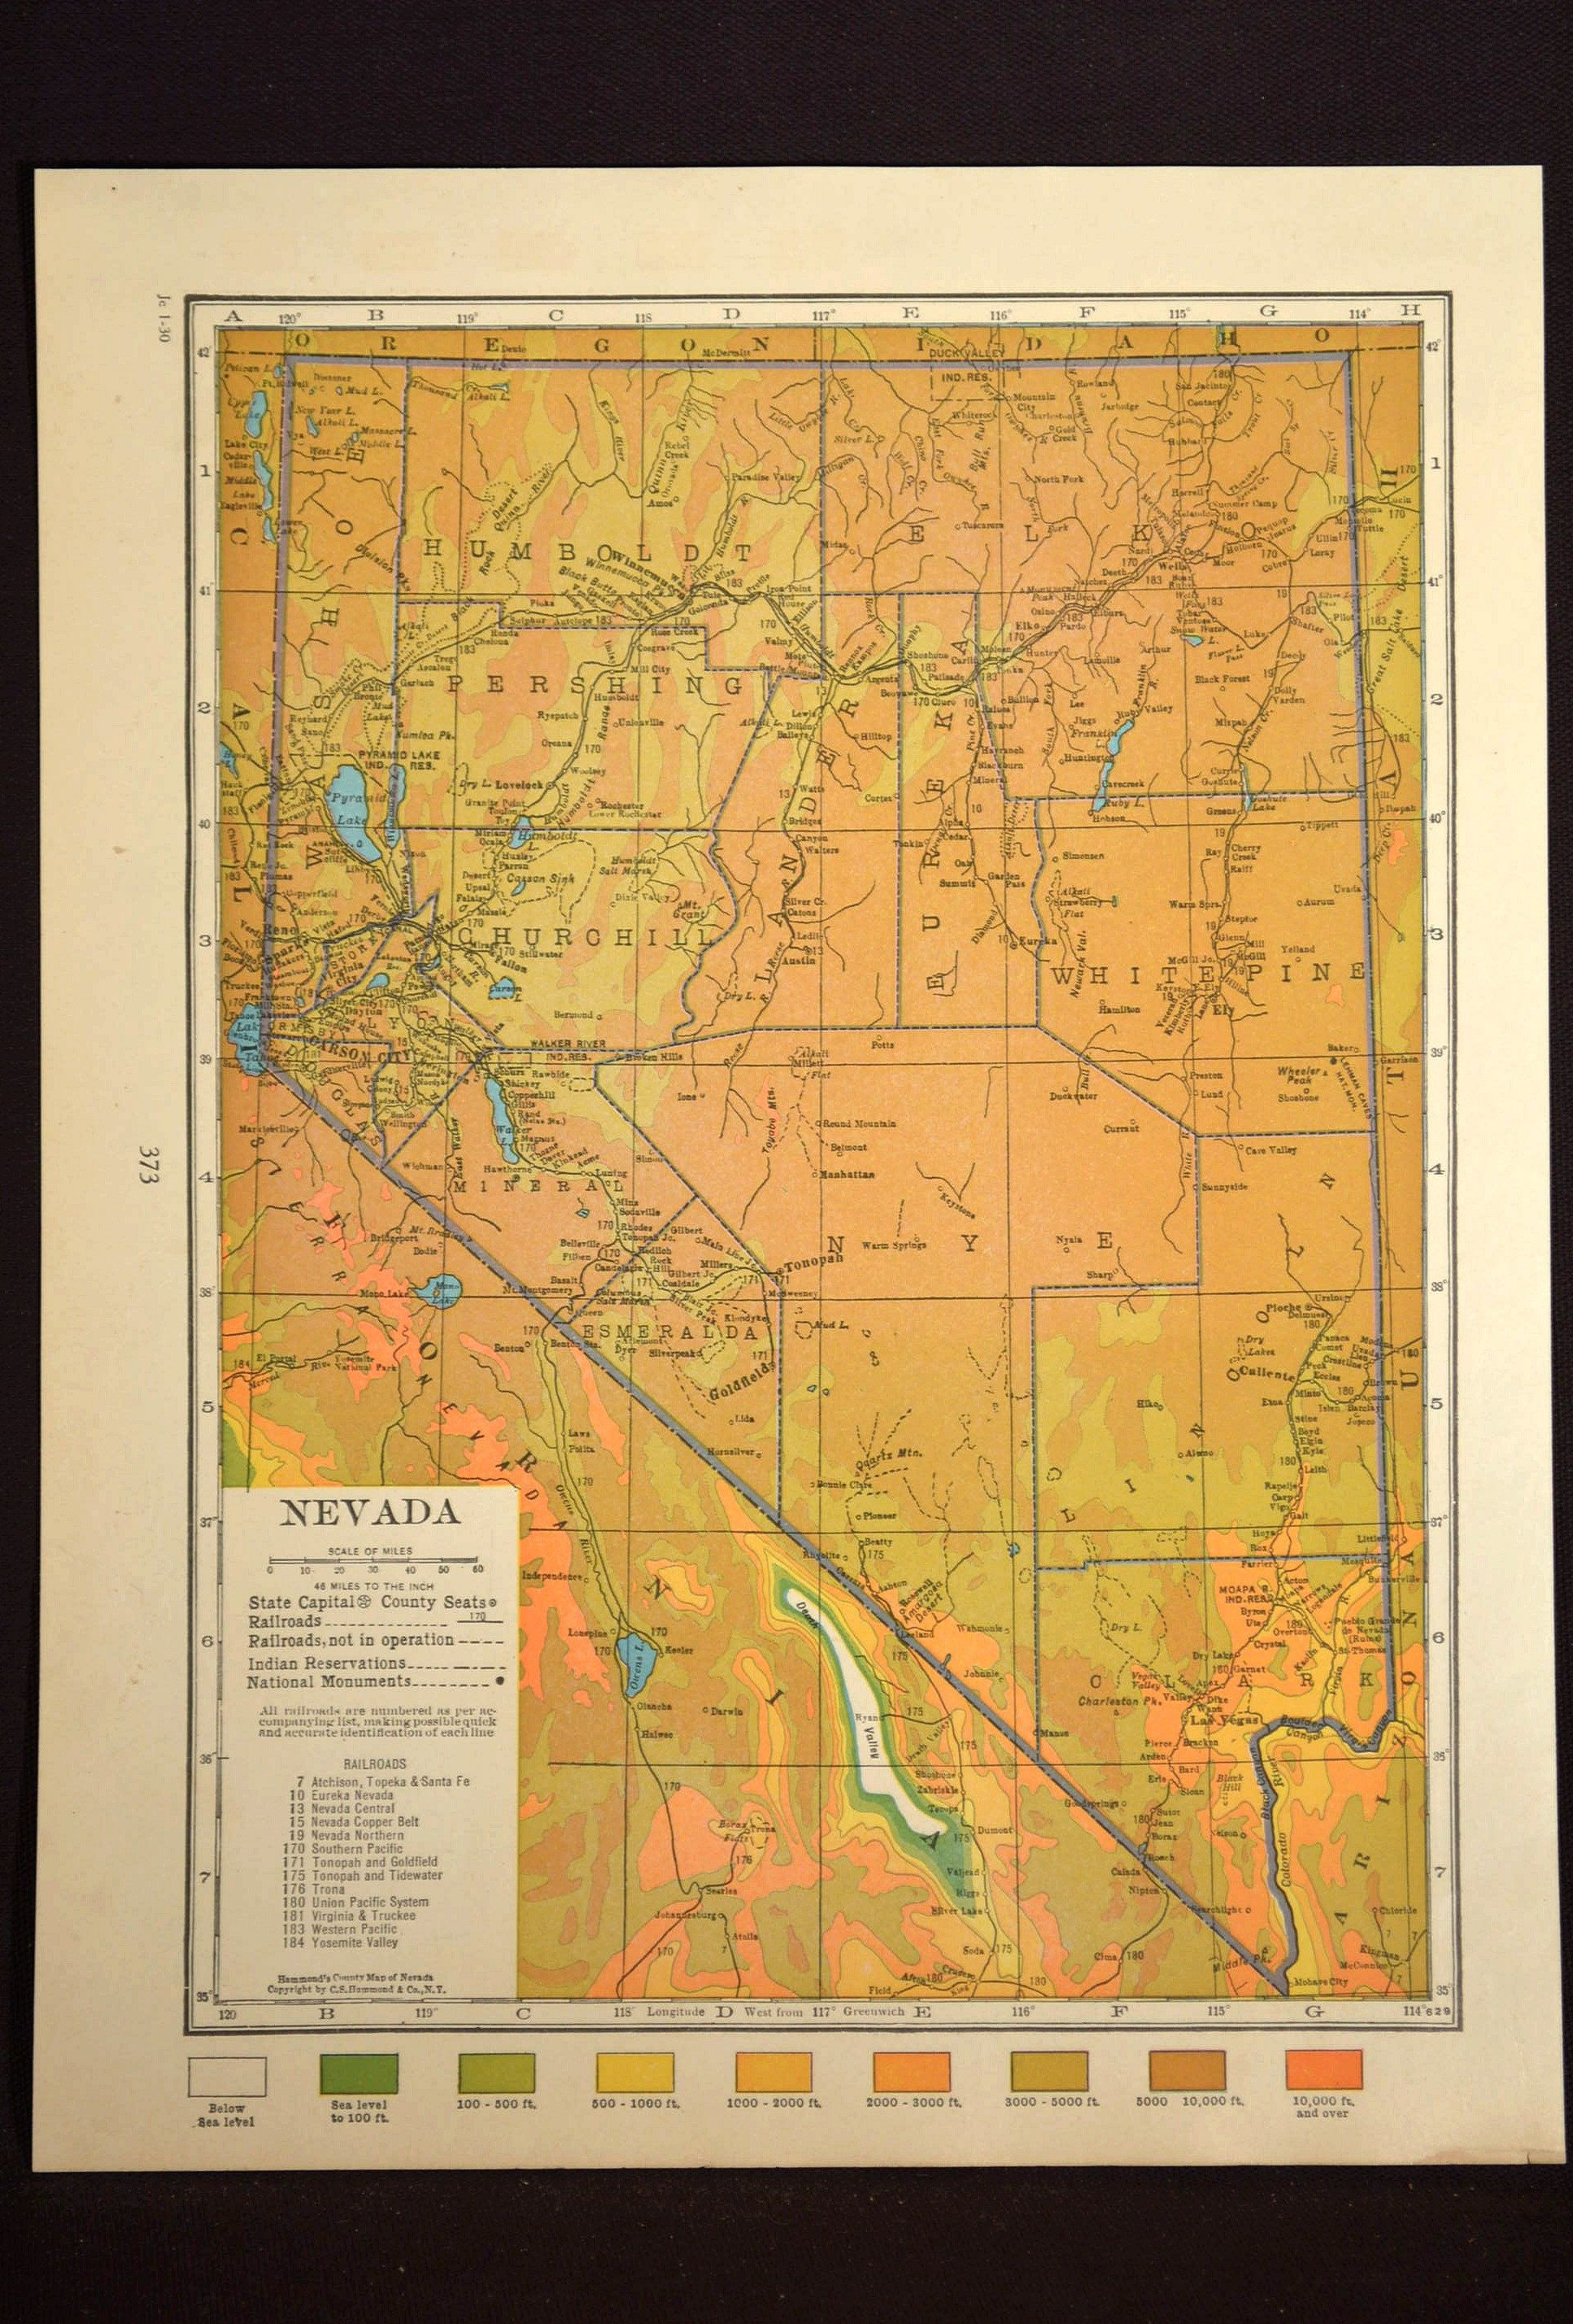 Nevada Map Nevada Topographic Map Colorful Colored Topo | Map Wall ...